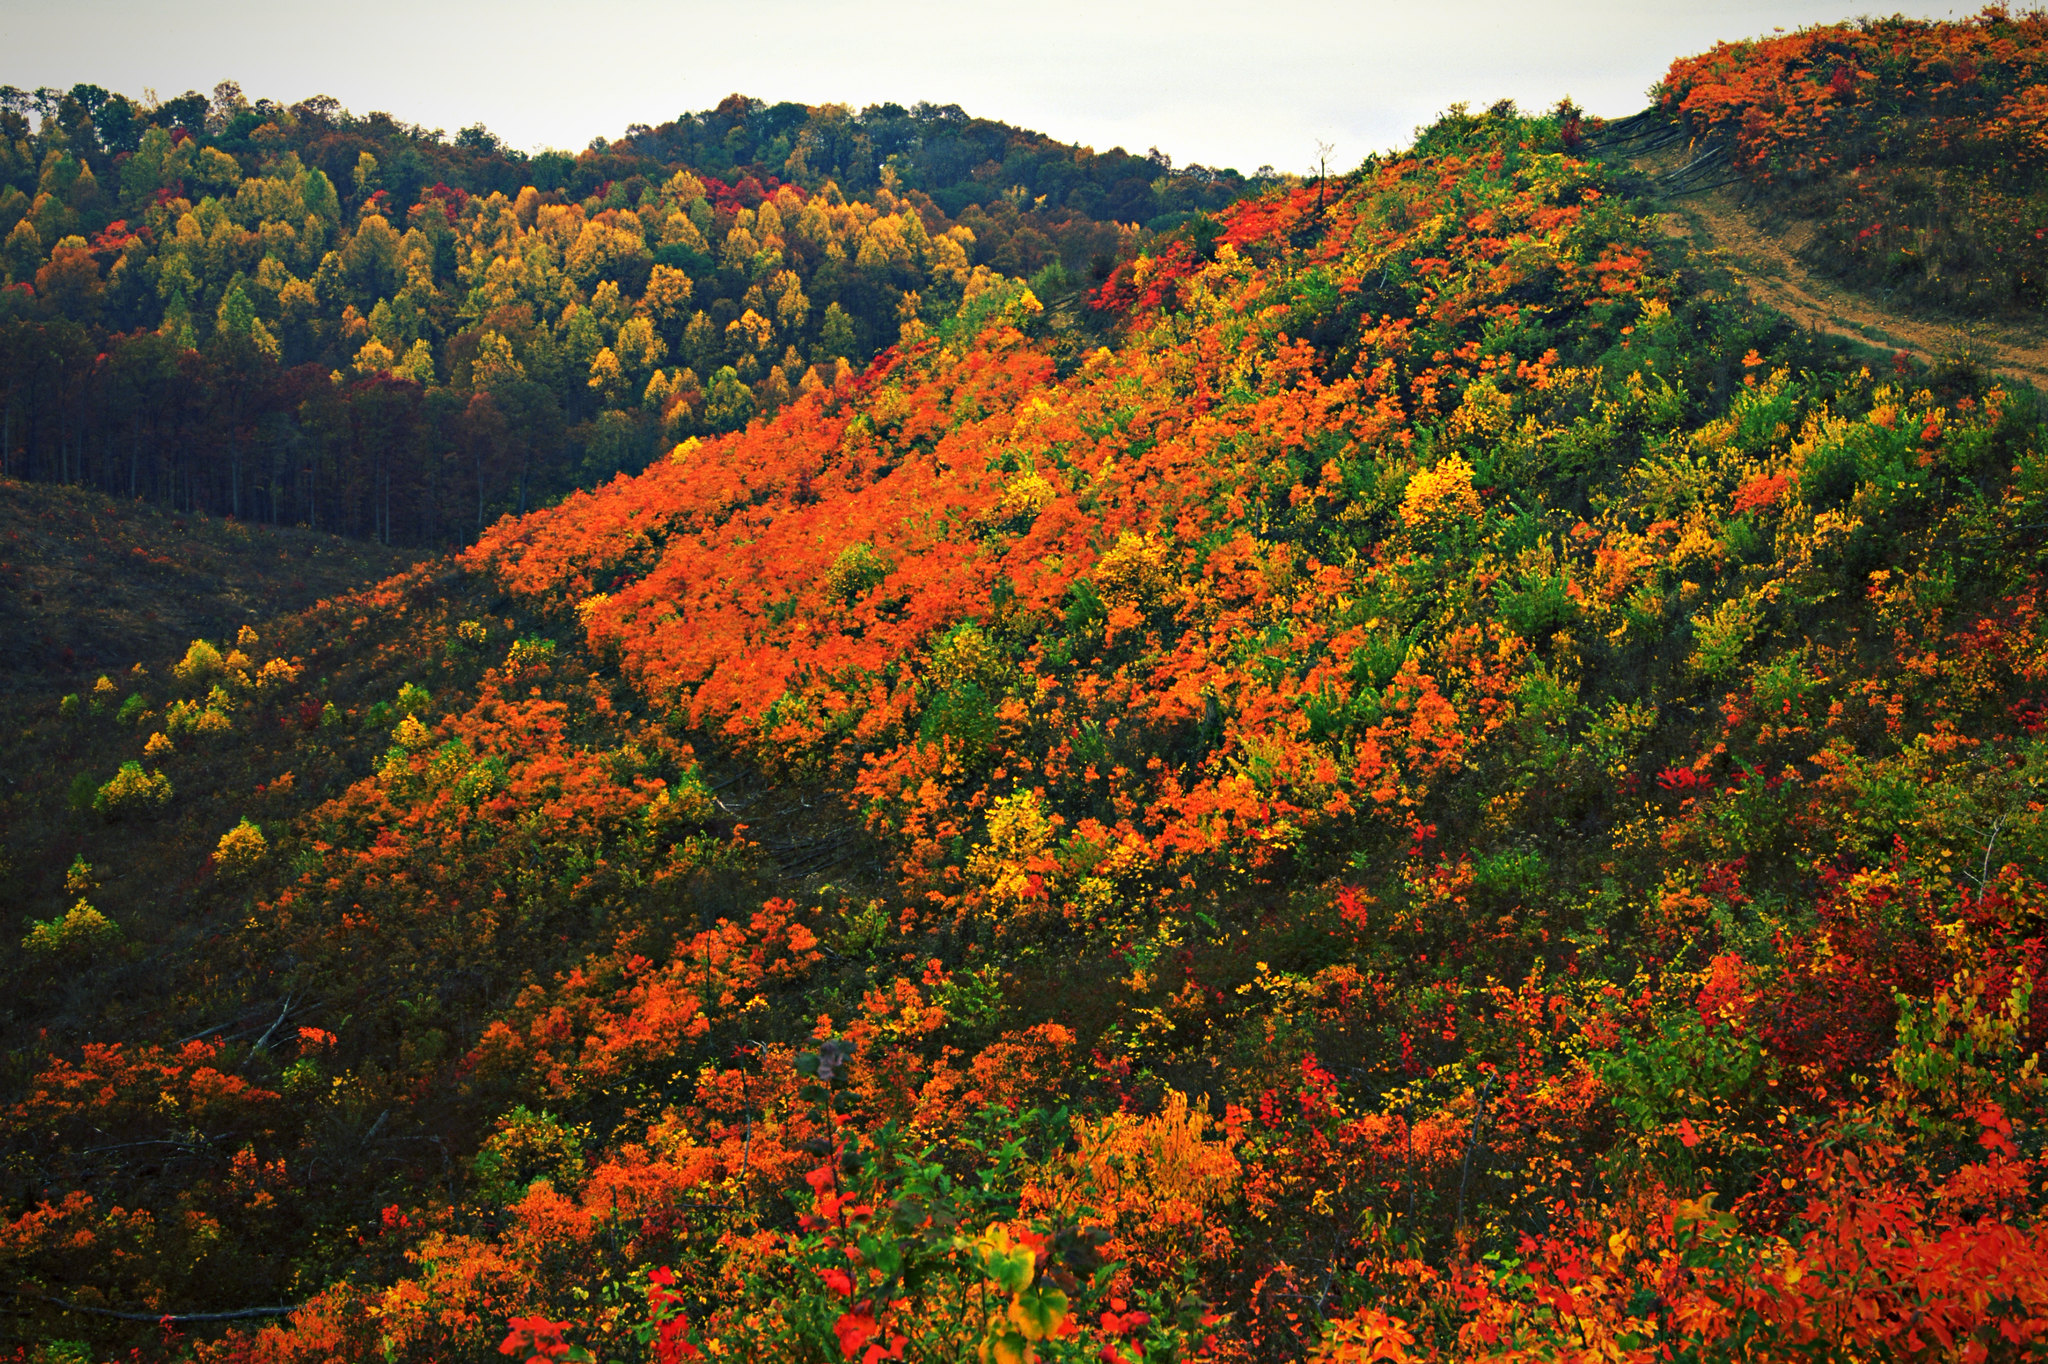 Find Out When The Leaves Will Change Color In Ohio With This Interactive Fall Foliage Map